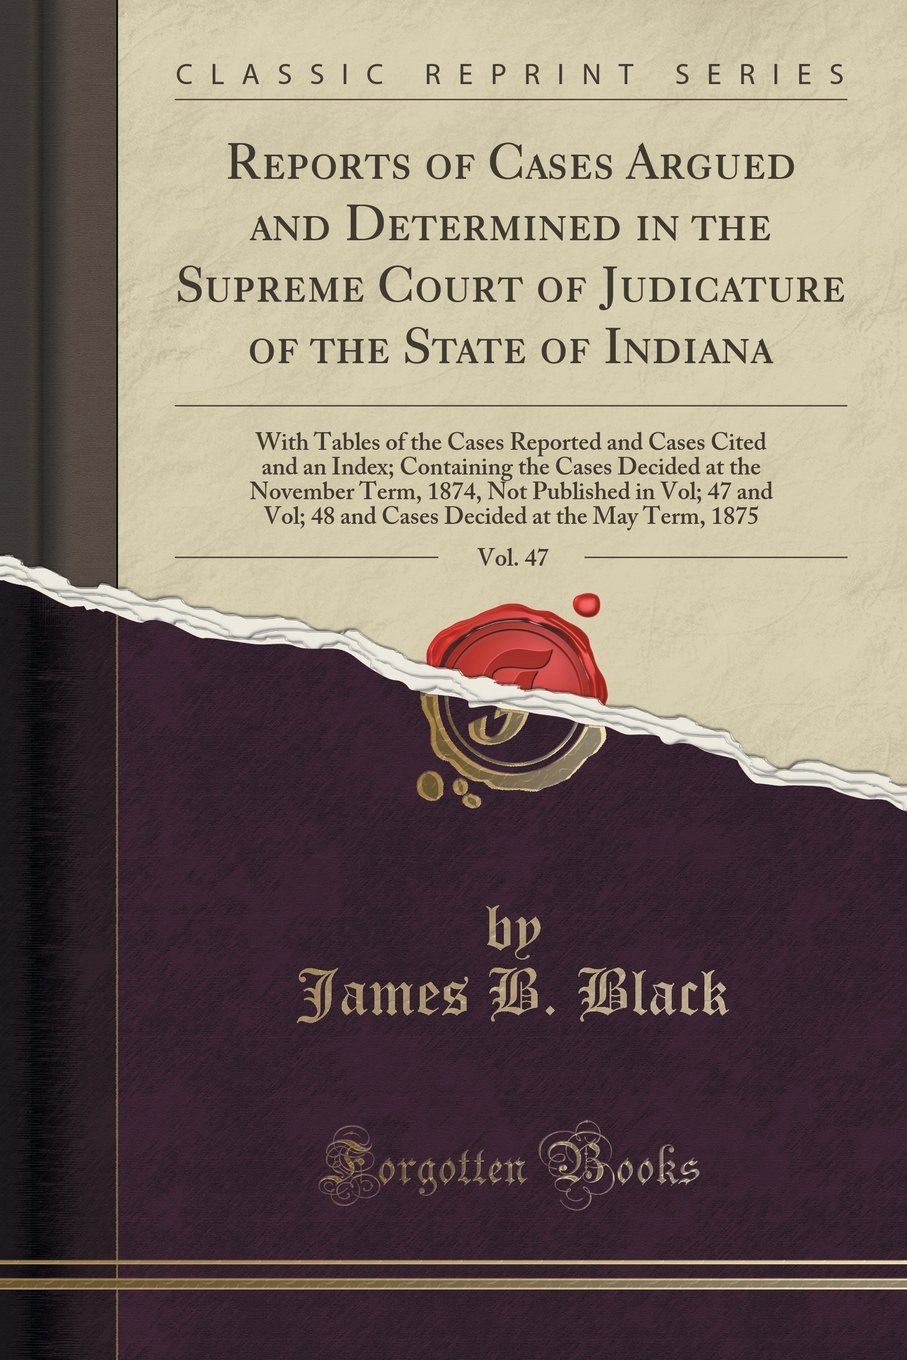 Reports of Cases Argued and Determined in the Supreme Court of Judicature of the State of Indiana, Vol. 47: With Tables of the Cases Reported and ... Term, 1874, Not Published in Vol; 47 a ebook